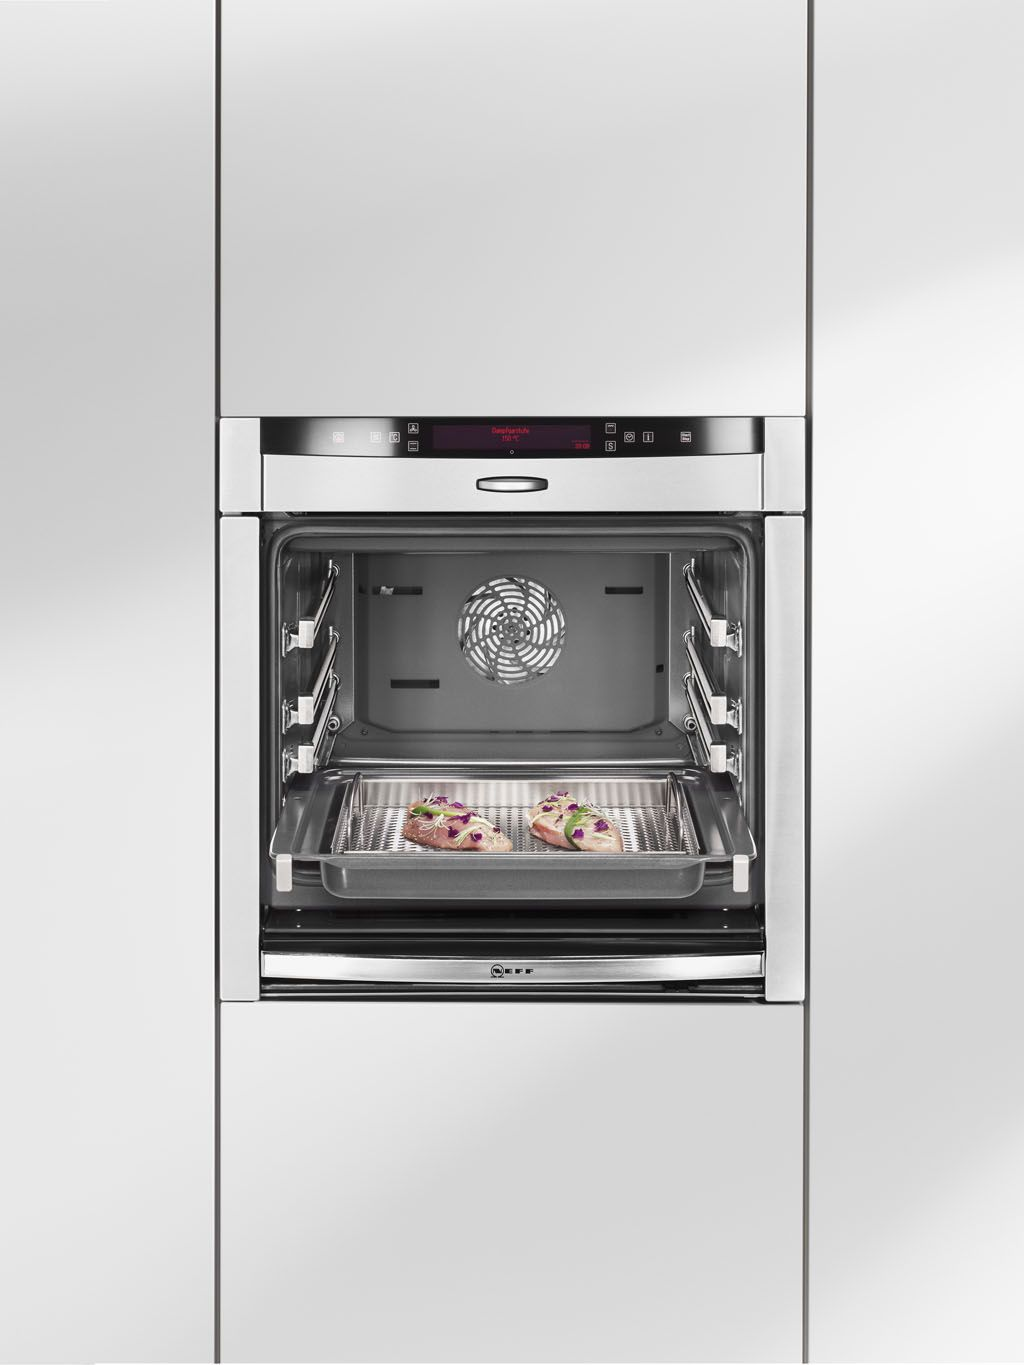 Backofen Mit Schiebetür Neff Slide Hide Iproducts Kitchen Appliances Kitchen Und Oven